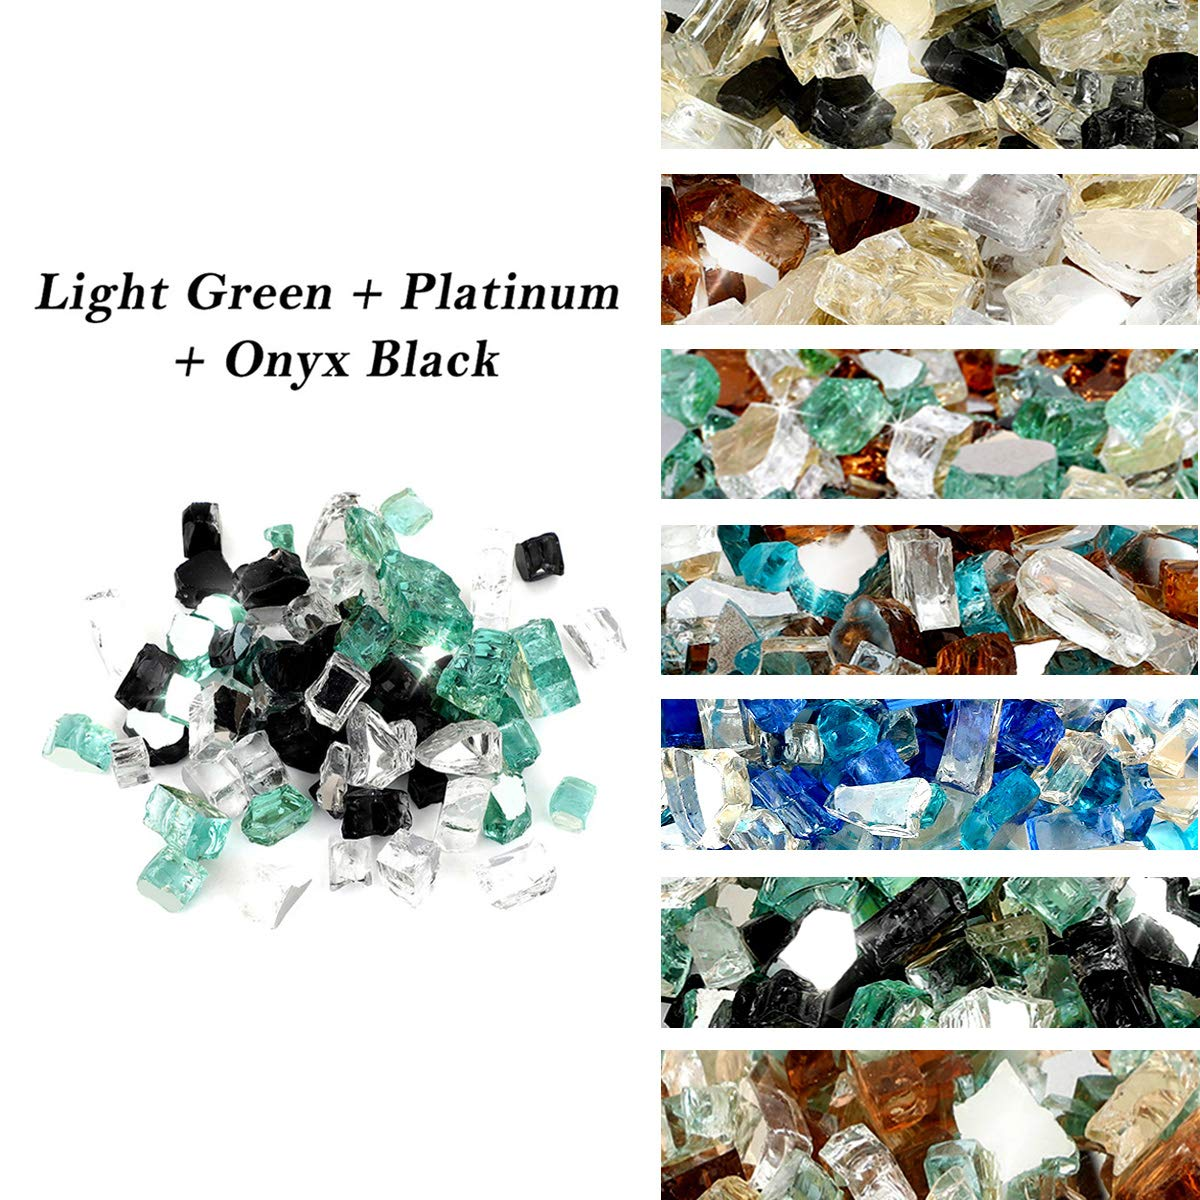 Skyflame 10-Pound Blended Fire Glass for Fire Pit Fireplace Landscaping - 1/2 Inch Reflective Tempered Fireglass Onyx Black, Platinum, Light Green